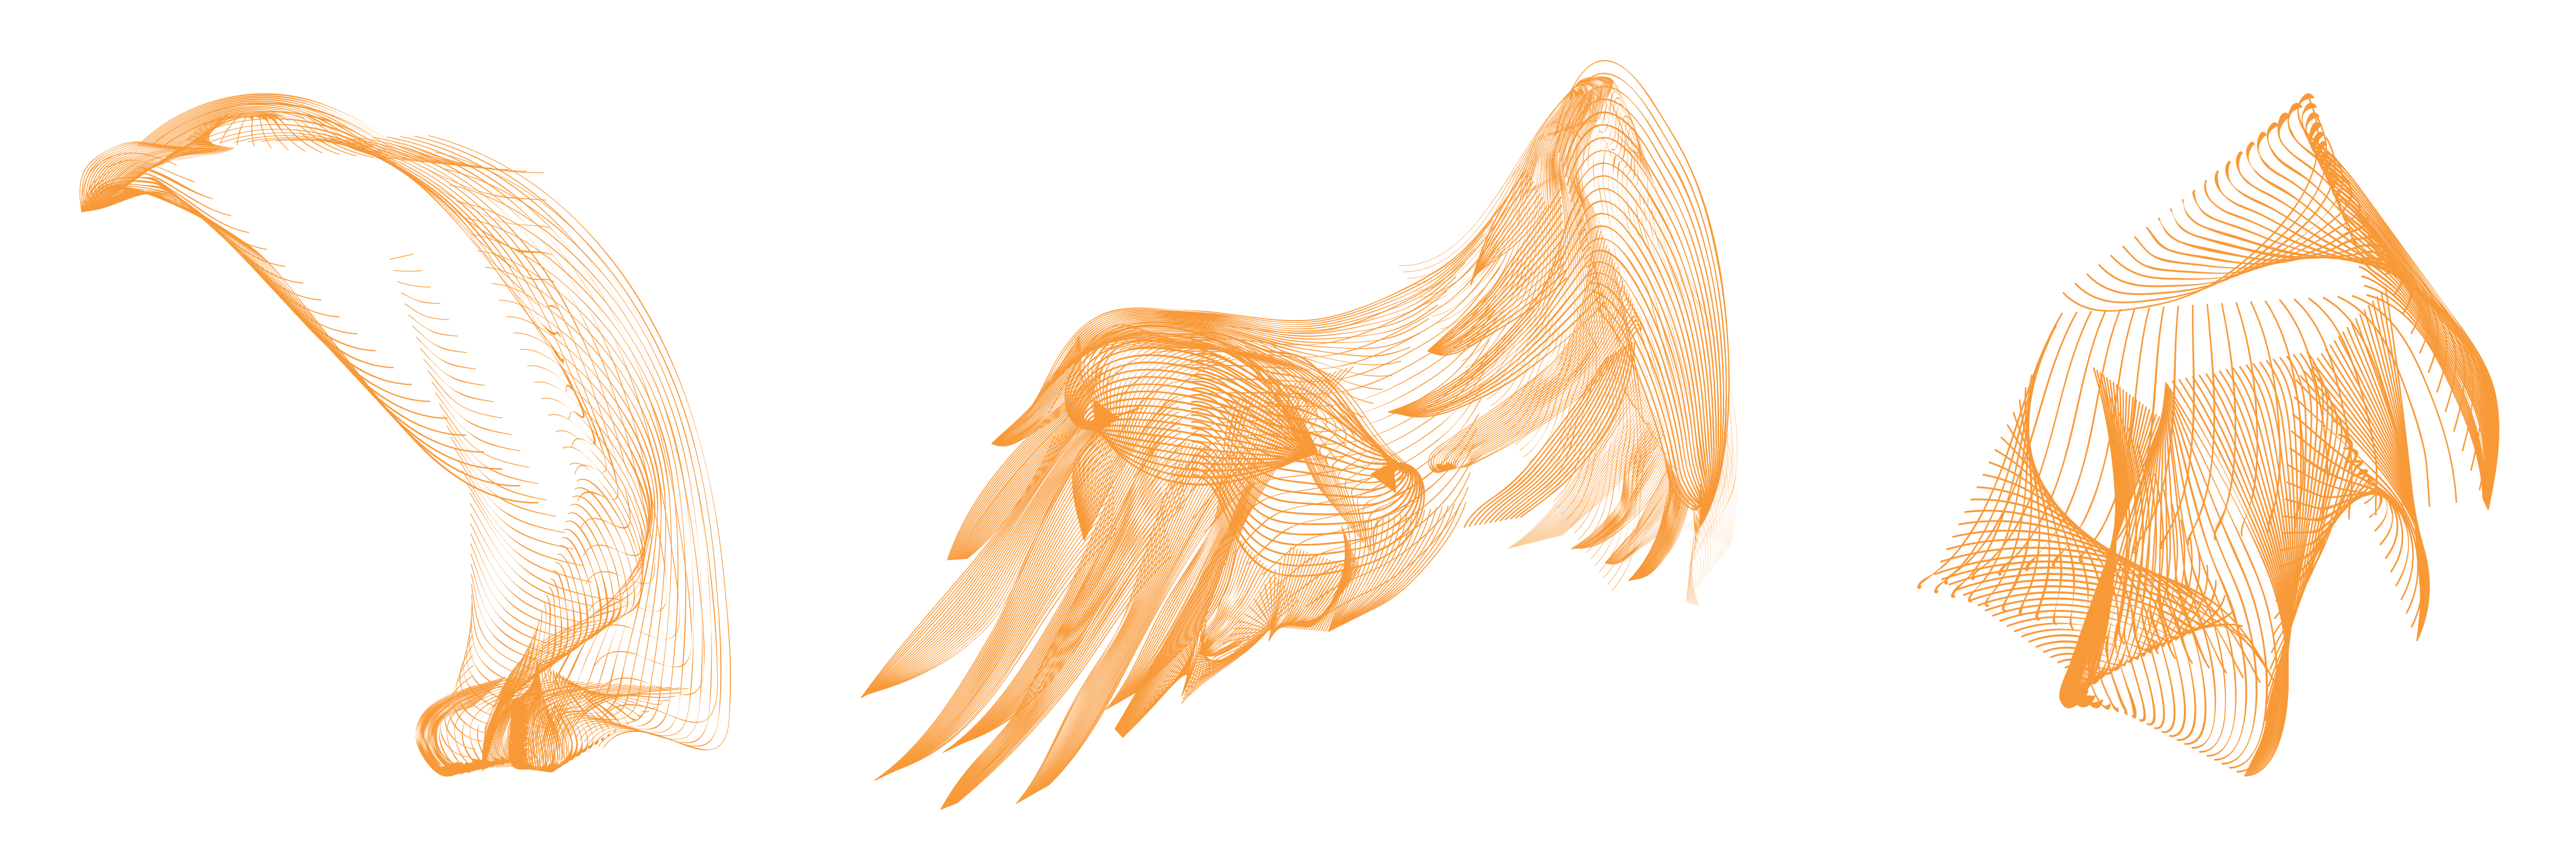 The bird was constructed from three main components; note that each feather on the wings was individually created.